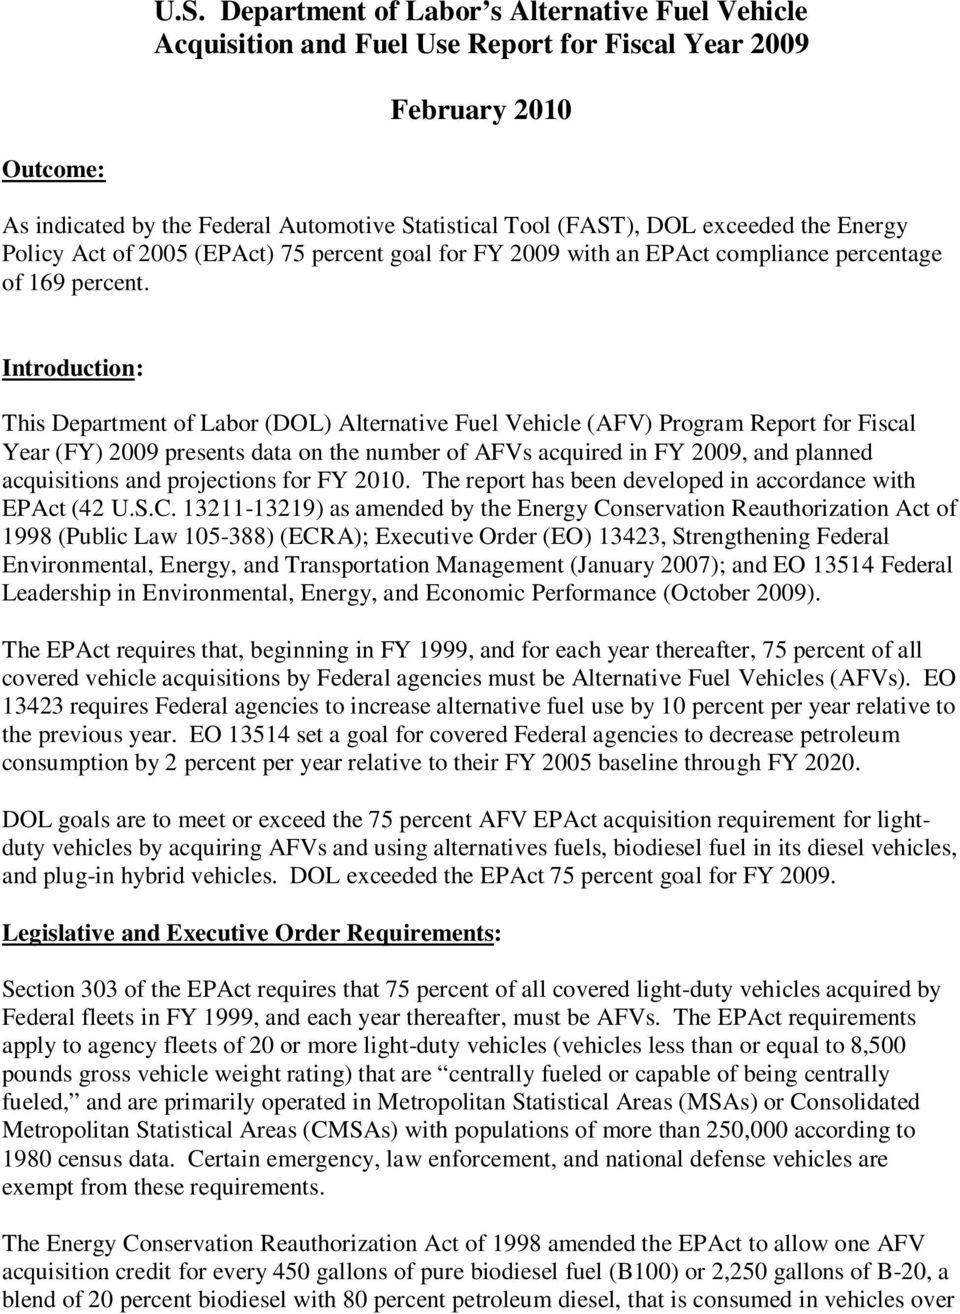 Introduction: This Department of Labor (DOL) Alternative Fuel Vehicle (AFV) Program Report for Fiscal Year (FY) 2009 presents data on the number of AFVs acquired in FY 2009, and planned acquisitions